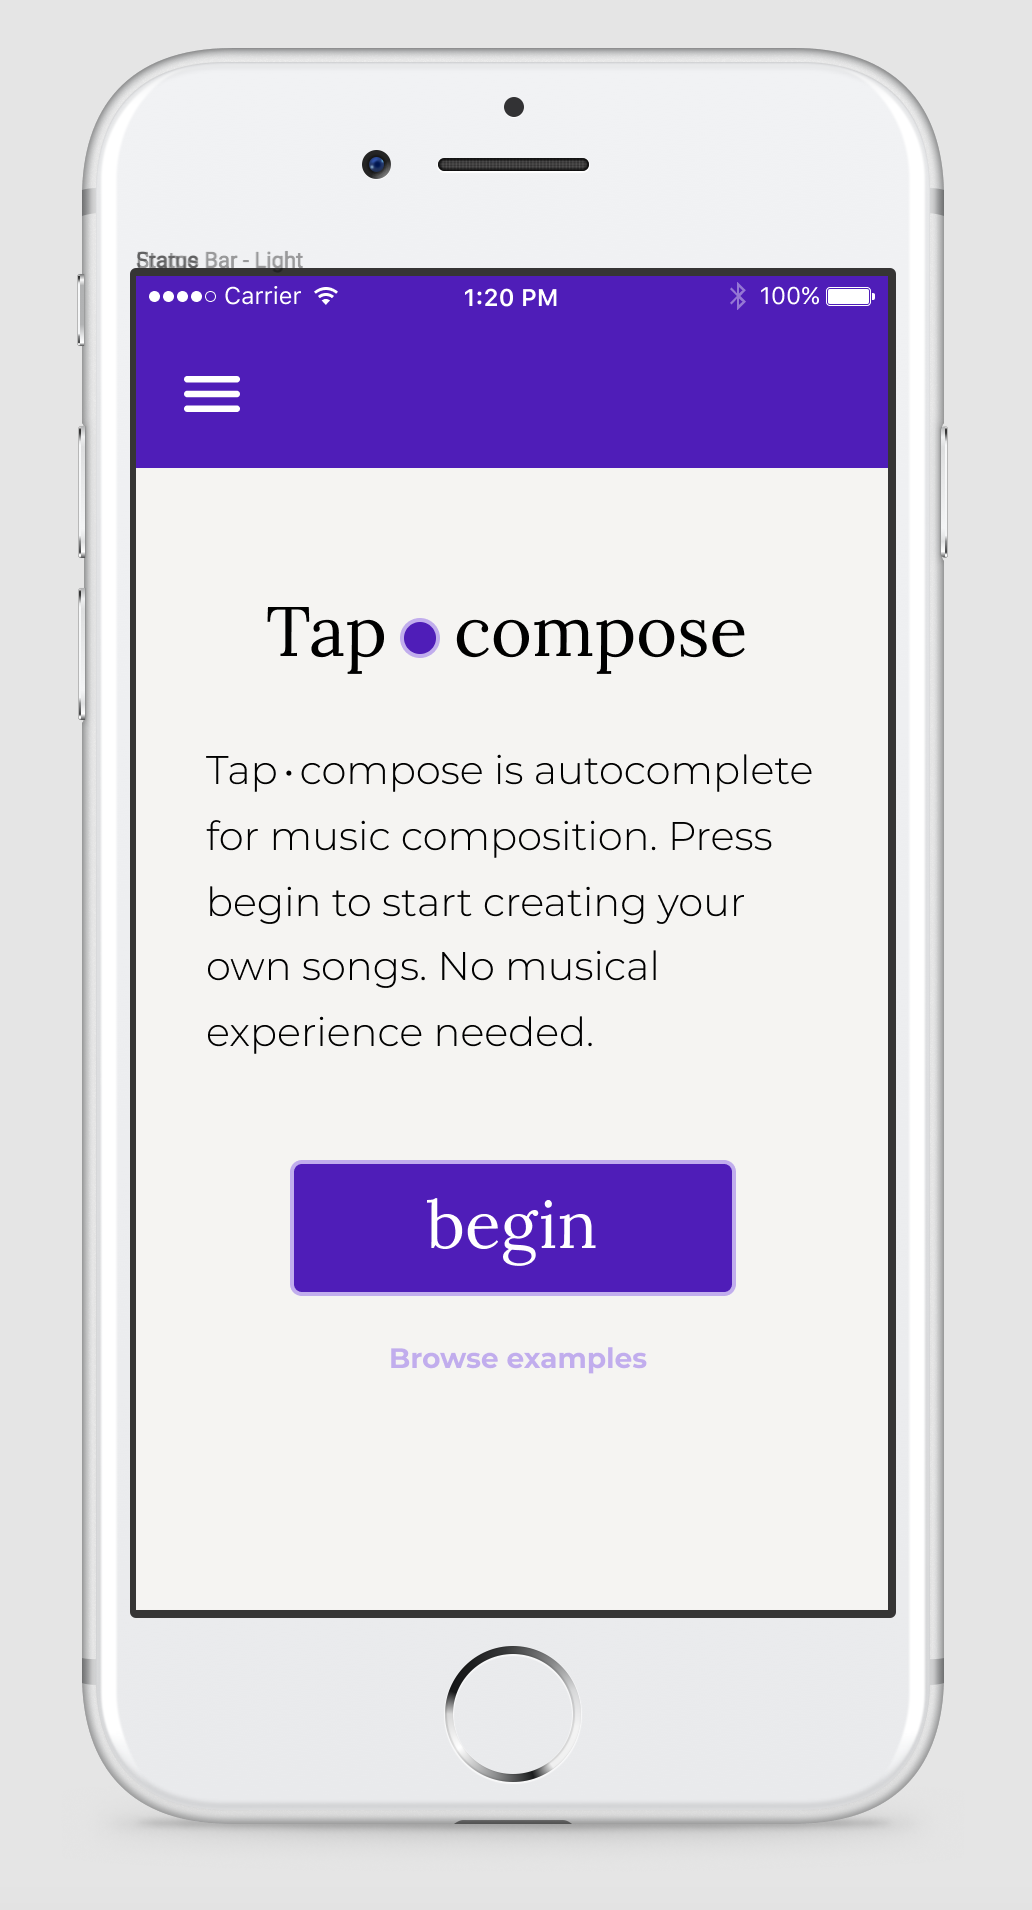 Mobile phone design concept for Tapcompose, showing the logo, a short description, and a big purple button that just says 'Begin.'